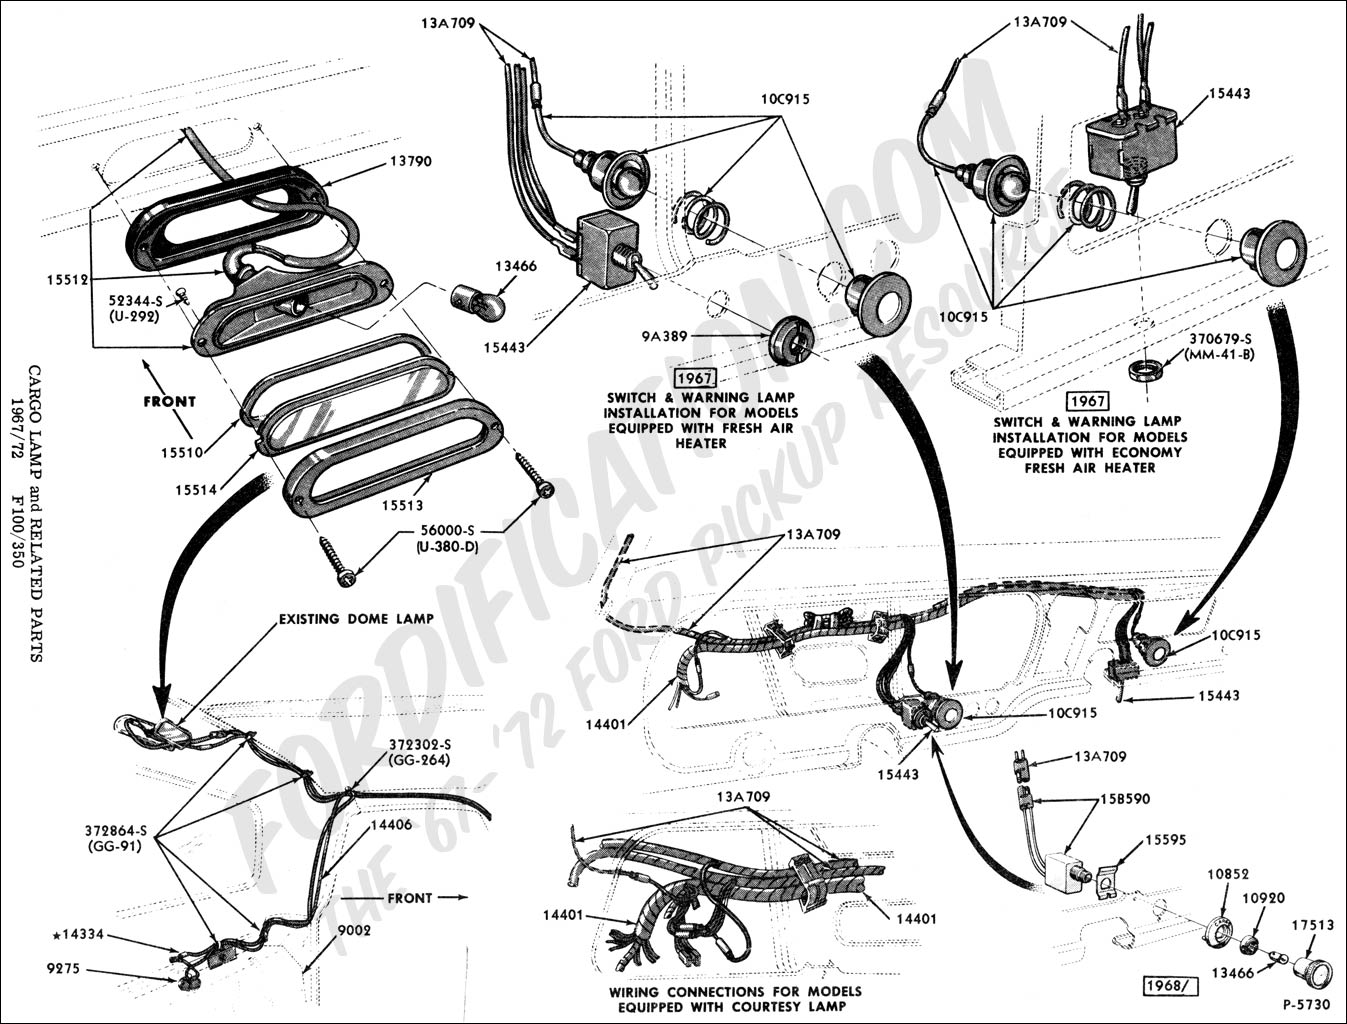 71 Corvette Wiring Diagram Corvette Wiring Diagram Images